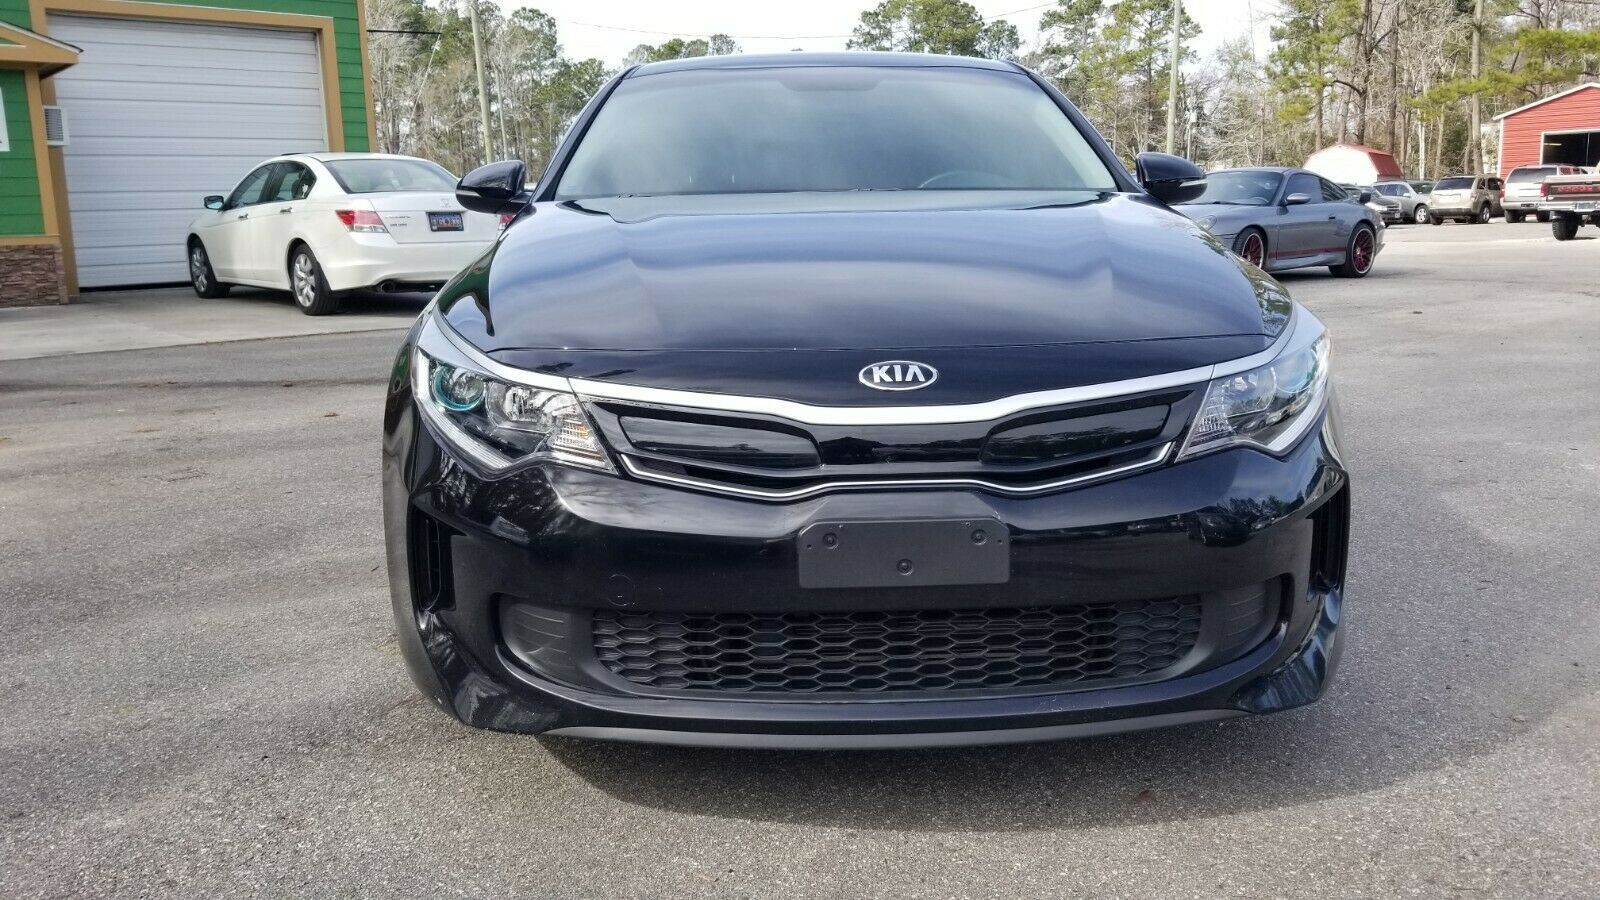 Used 2017 Kia Optima Hybrid Only 32k Miles Wholesale Priced 2020 Is In Stock And For Sale 24carshop Com Kia Optima Kia Gas And Electric